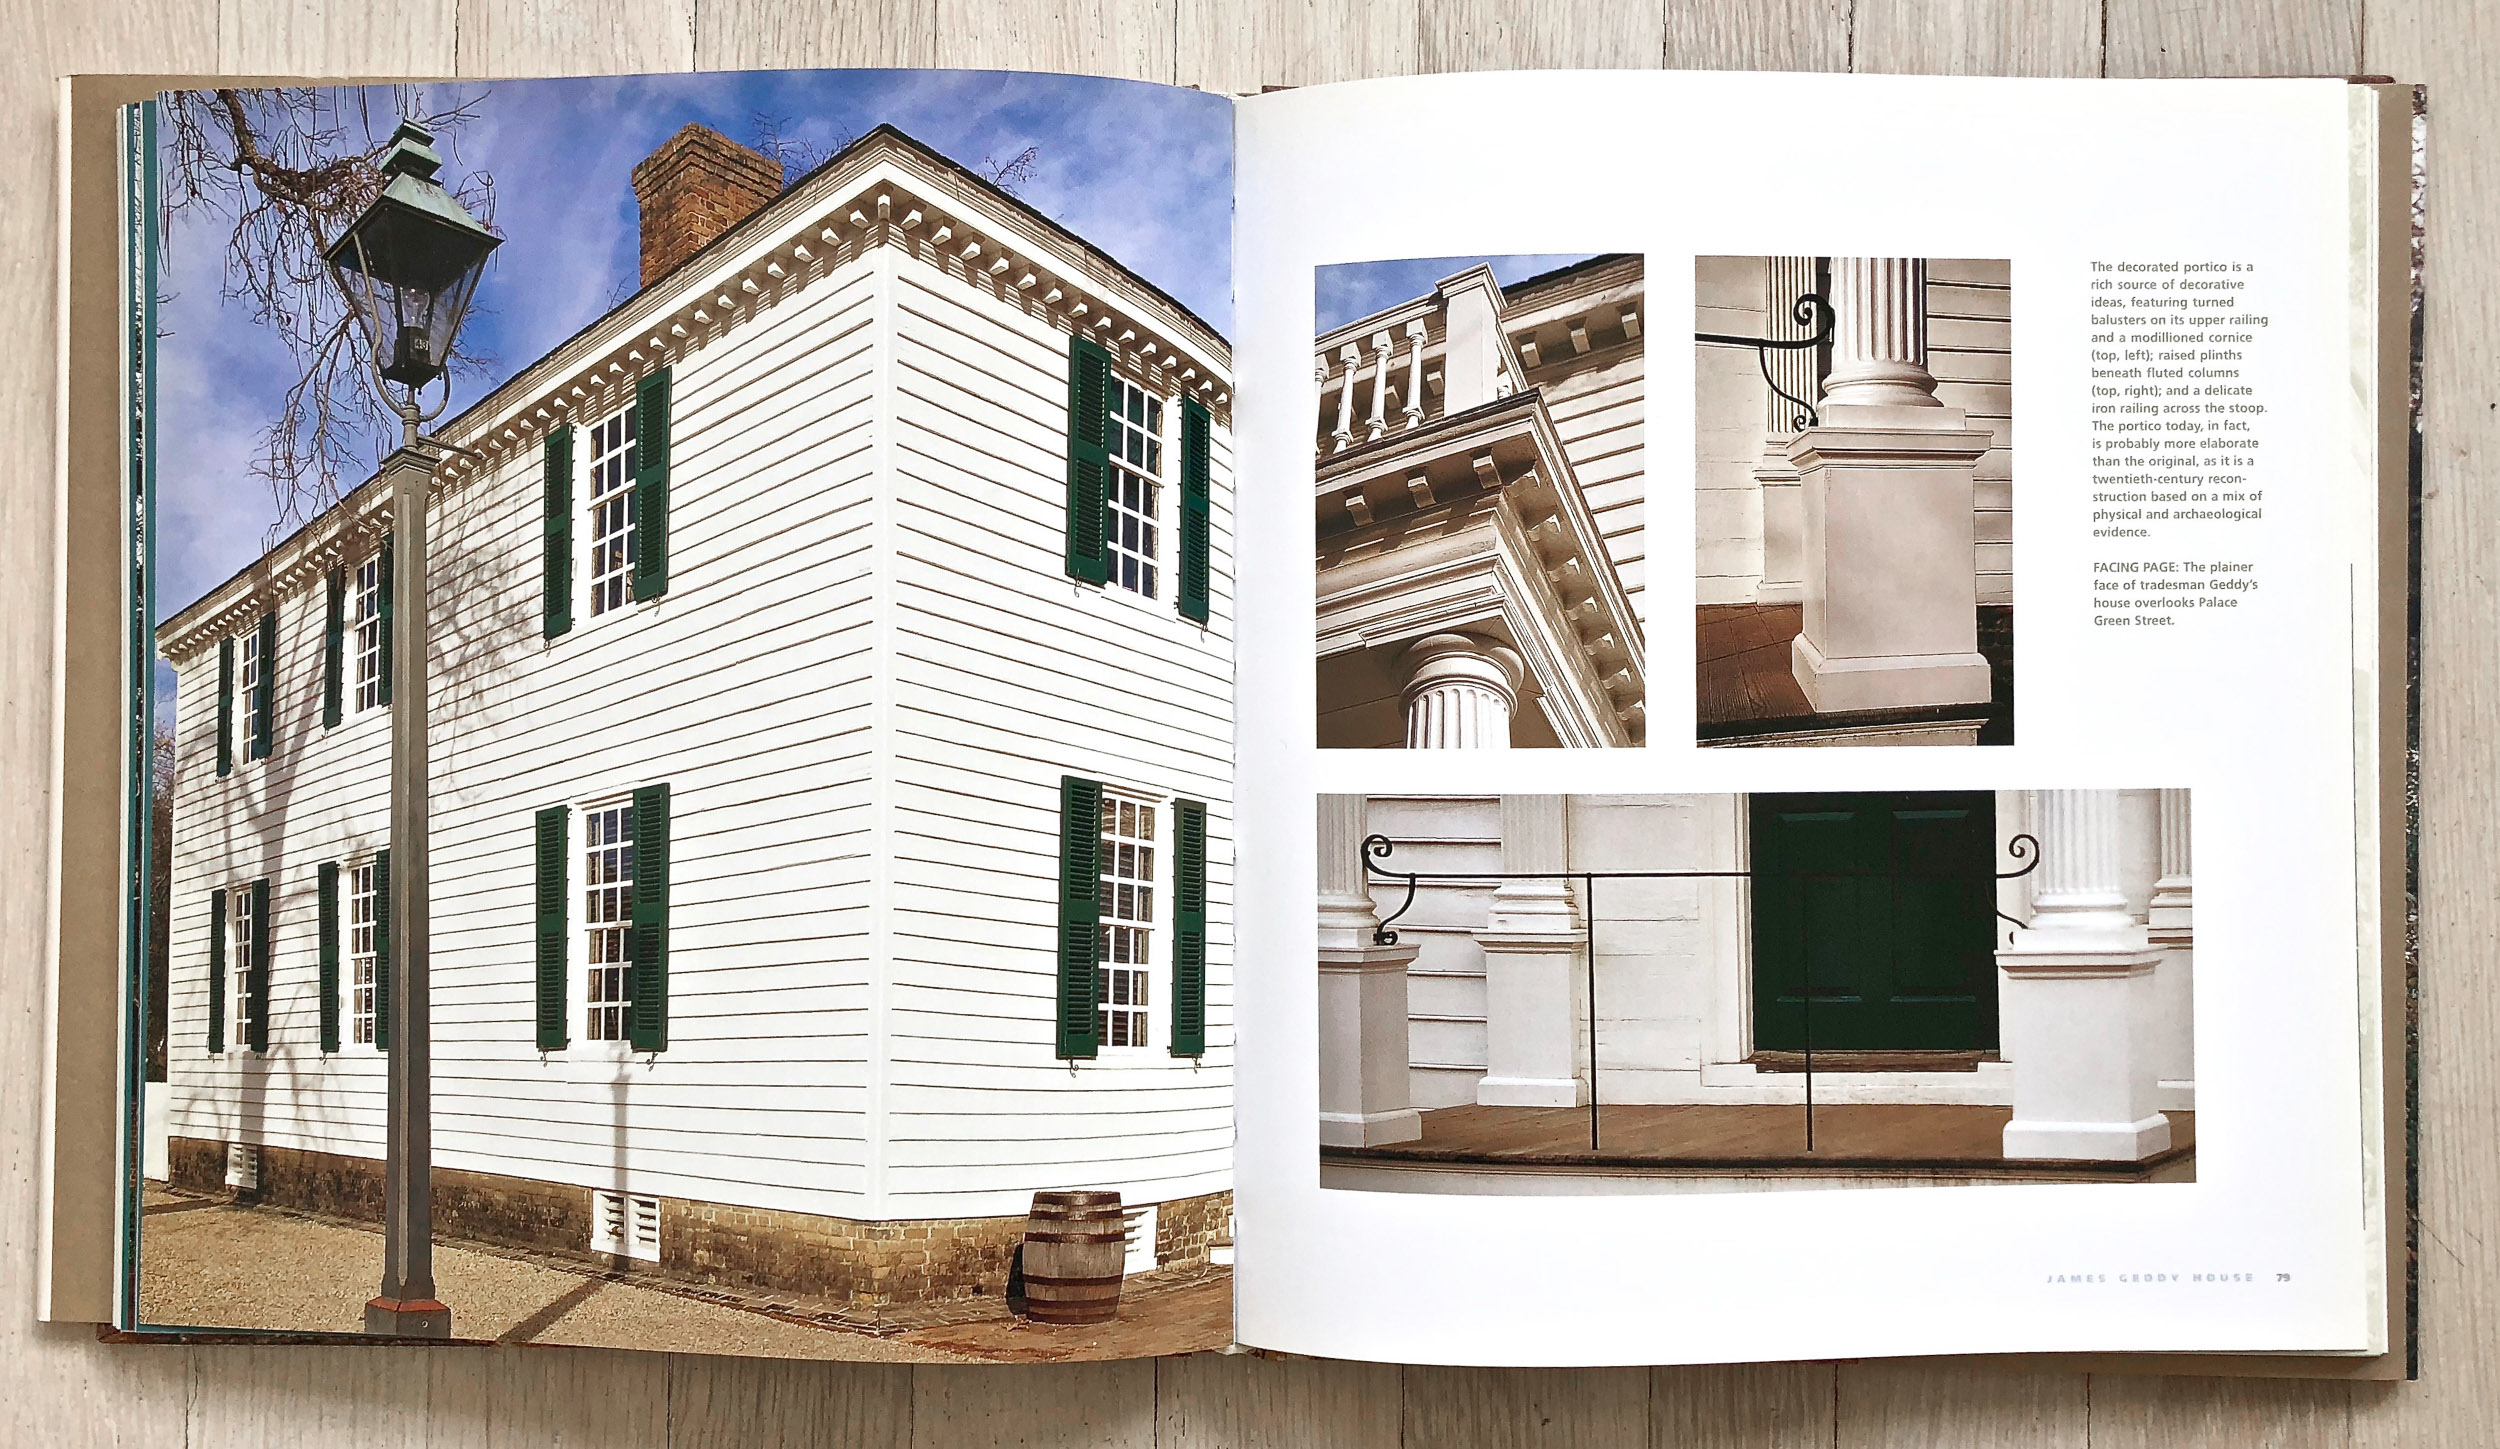 Colonial Houses  by Hugh Howard and Radek Kurzaj. Project Management and Editing by Richard Olsen, in Association with The Colonial Williamsburg Foundation. Ellen Nygaard Ford, Graphic Design. Harry N. Abrams, Inc., Publishers.